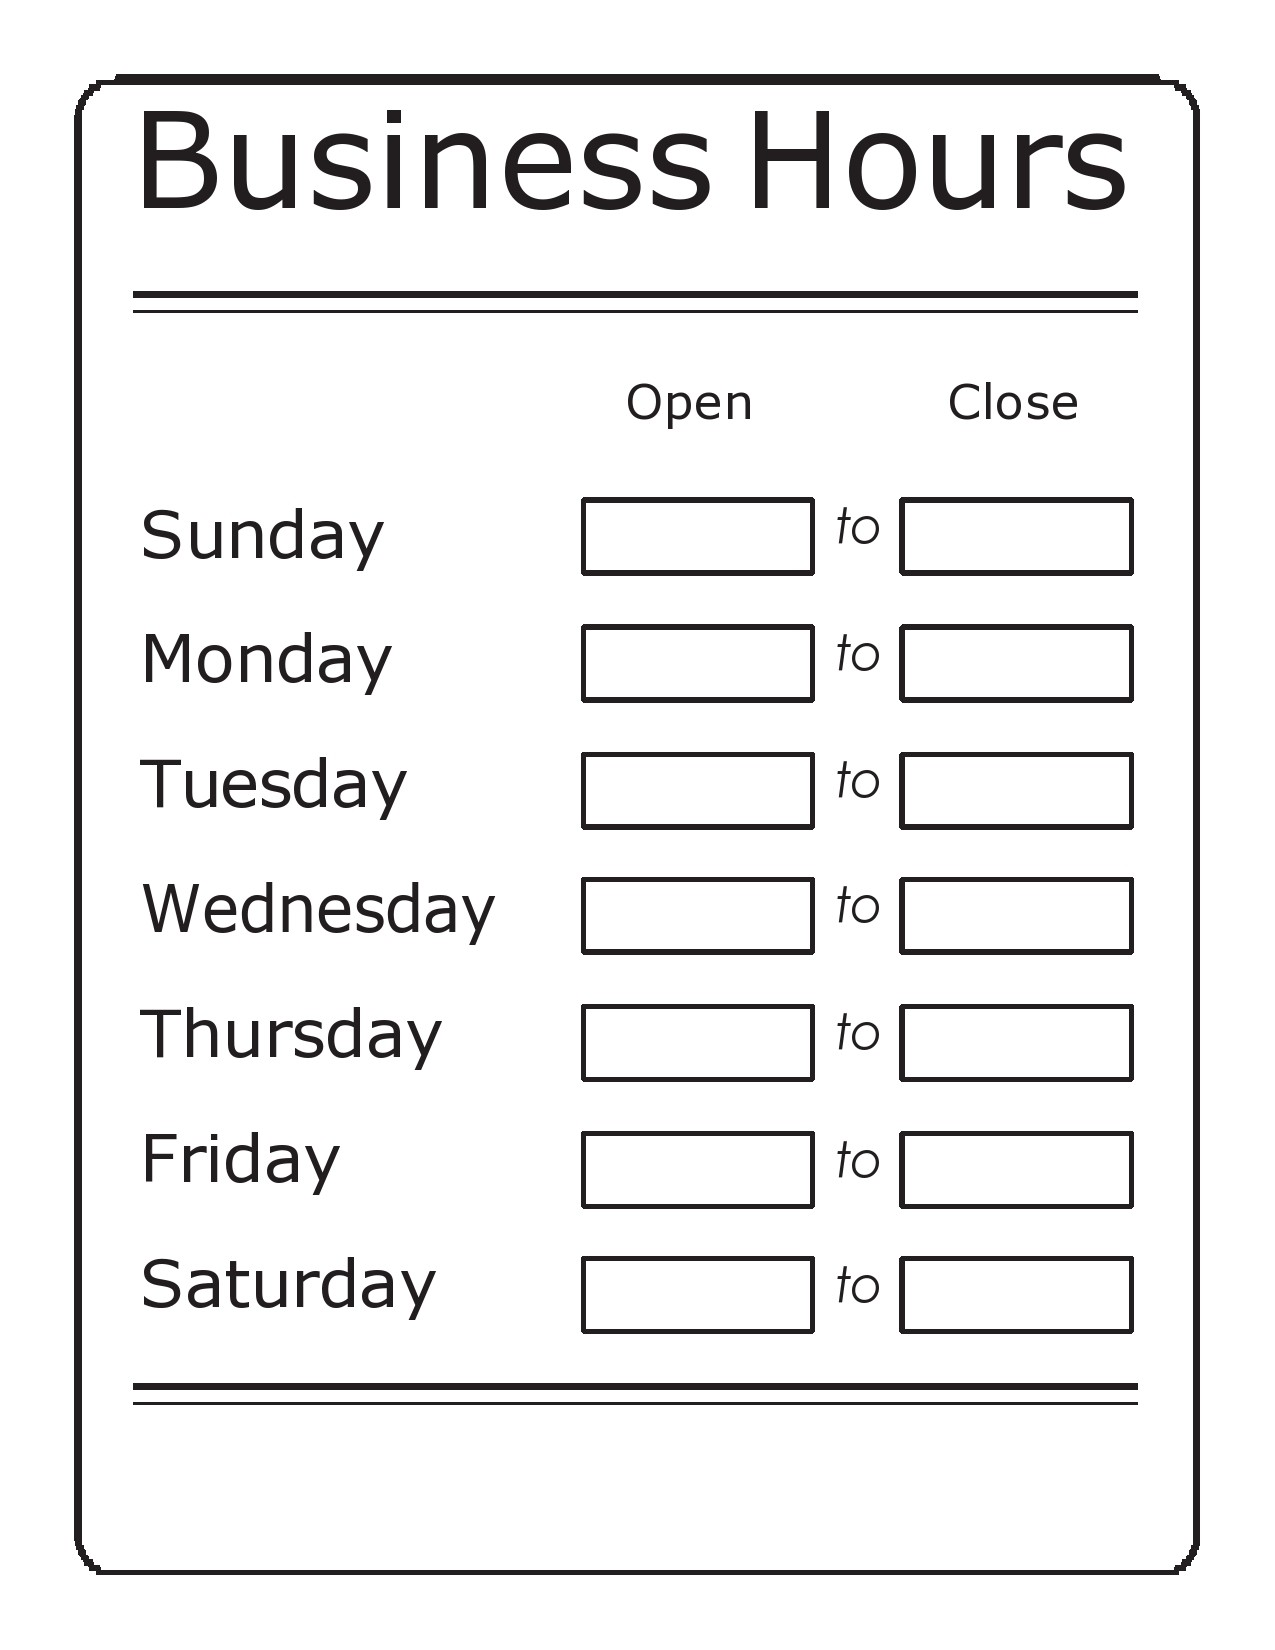 Free business hours template 24